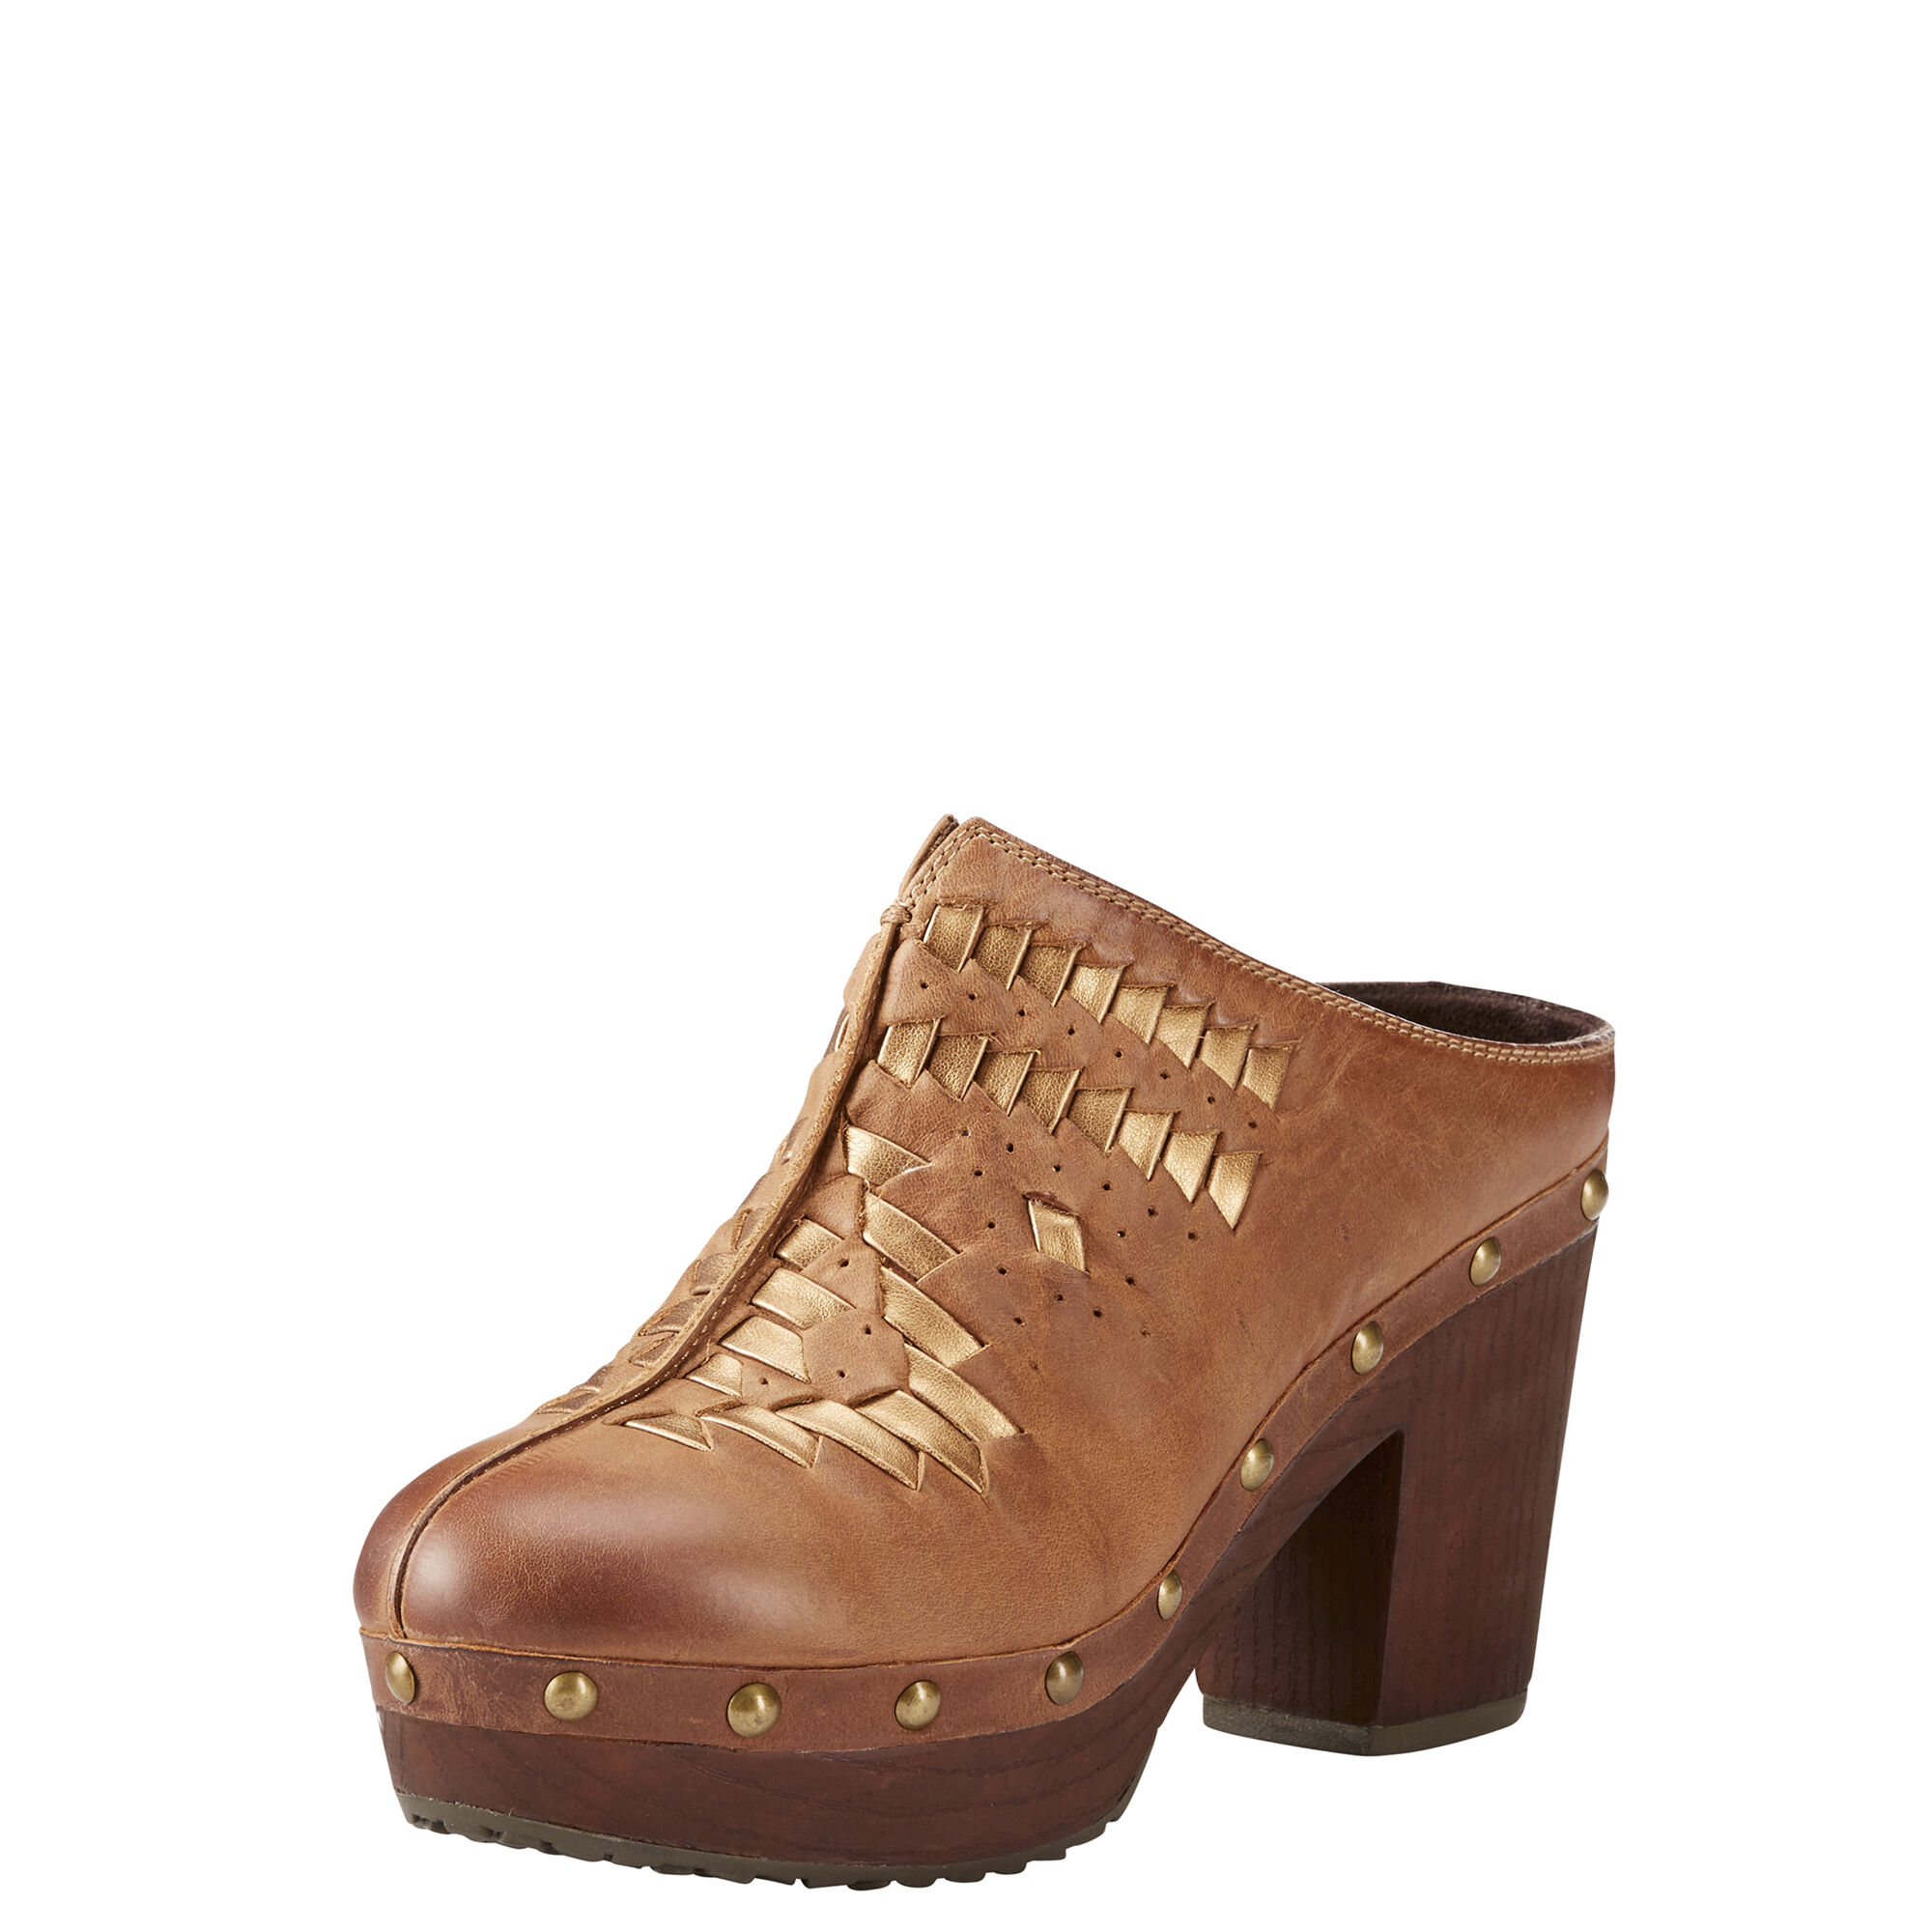 Women's Bria Western Boots in Bronzed Brown Leather by Ariat